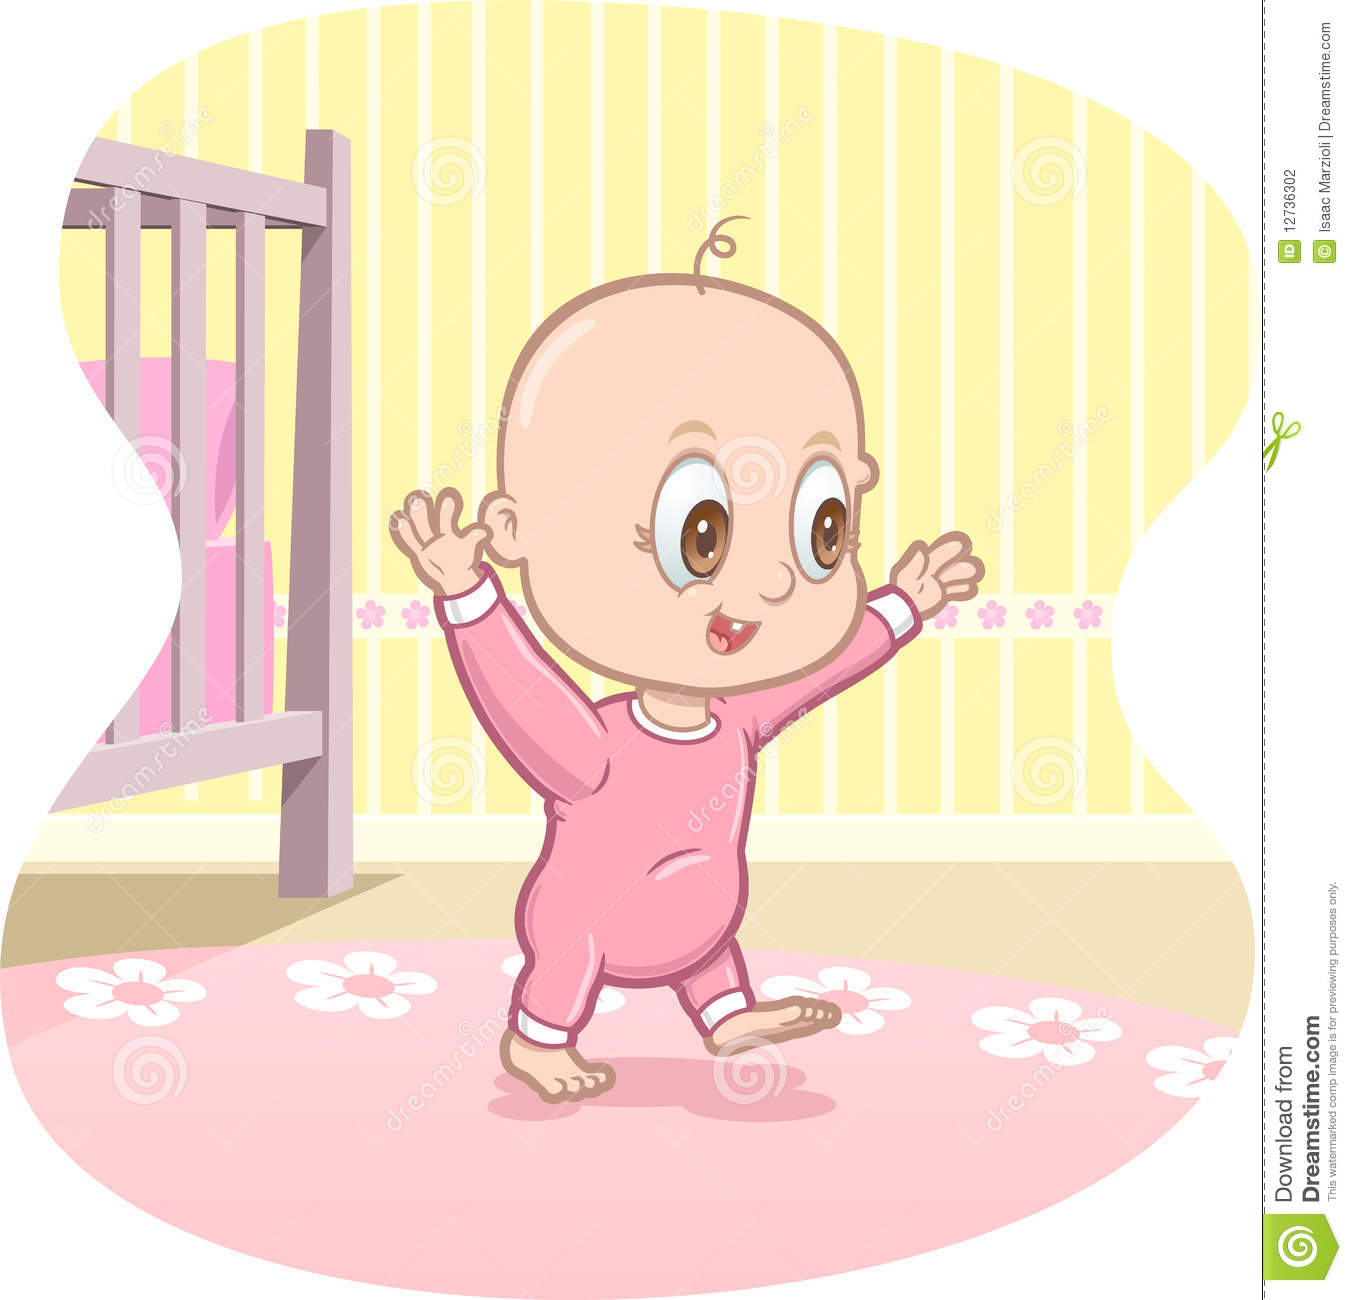 Baby learning to walk clipart.